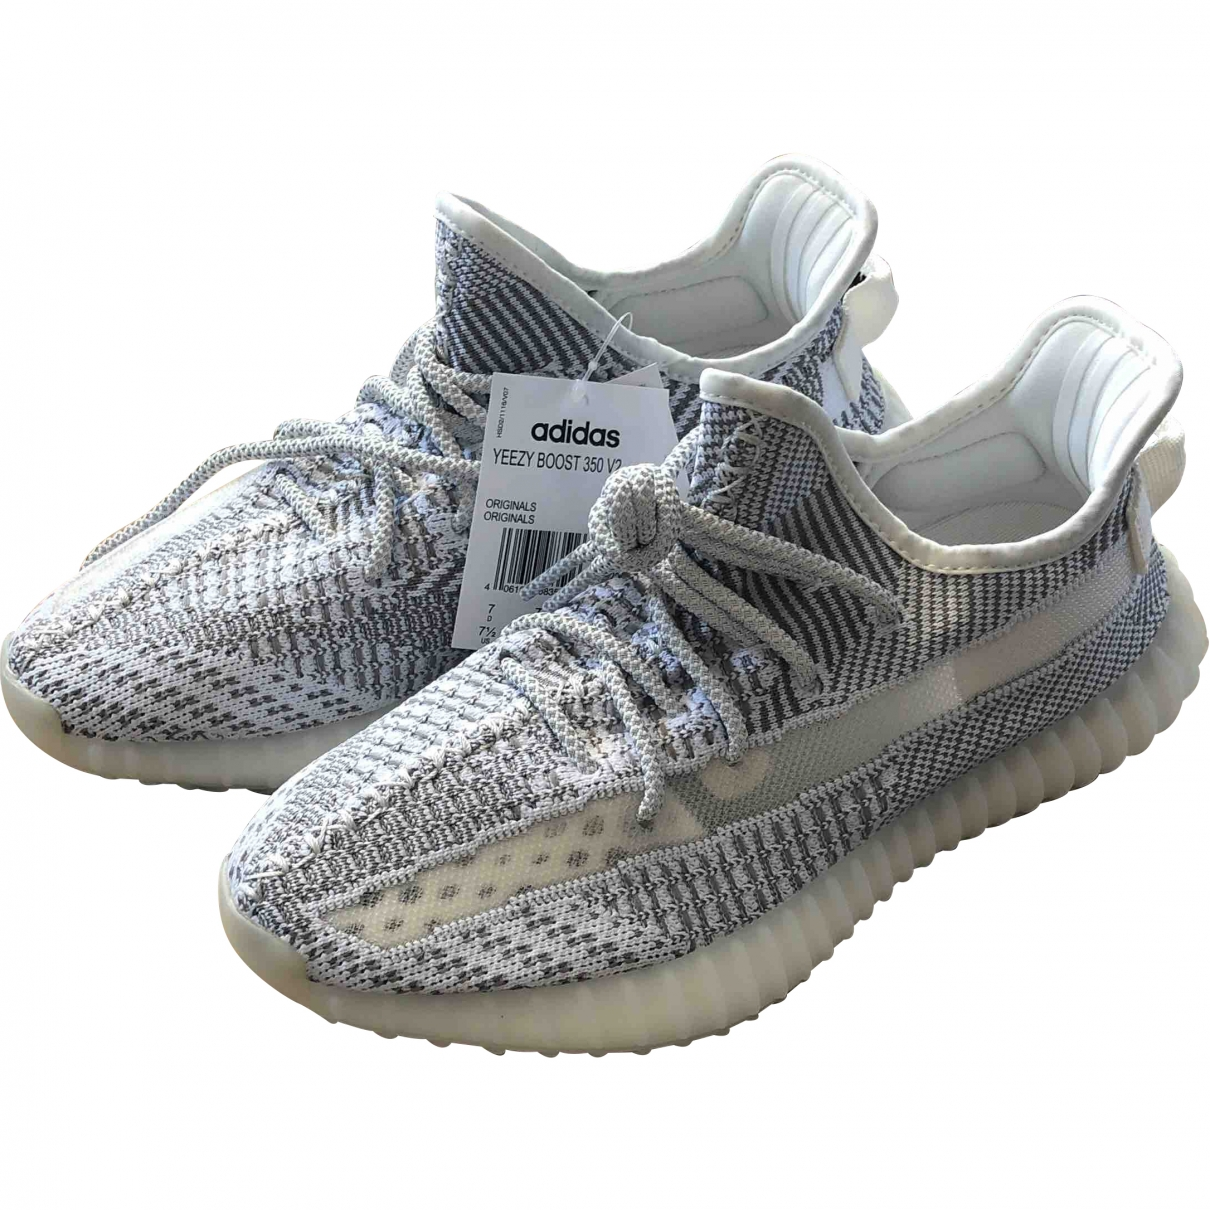 Yeezy X Adidas \N Cloth Trainers for Women 7 UK